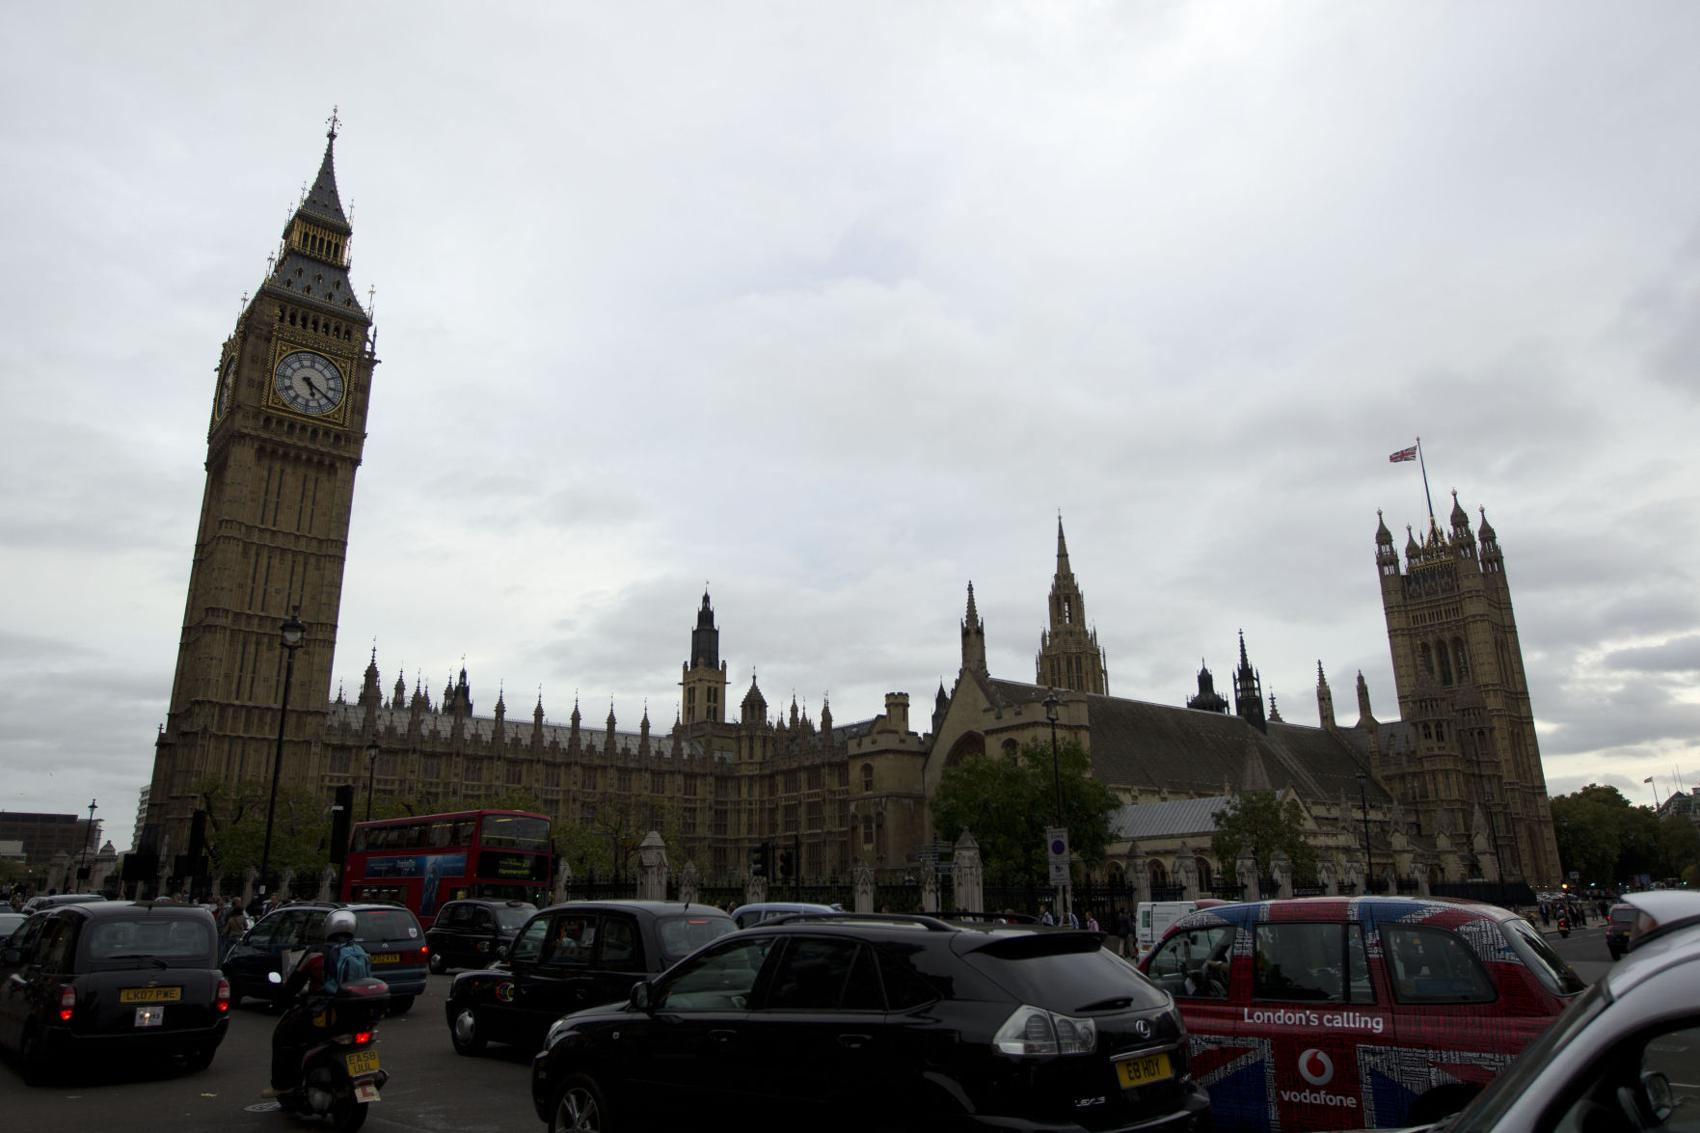 James Gill: Does London prove the NRA is right?